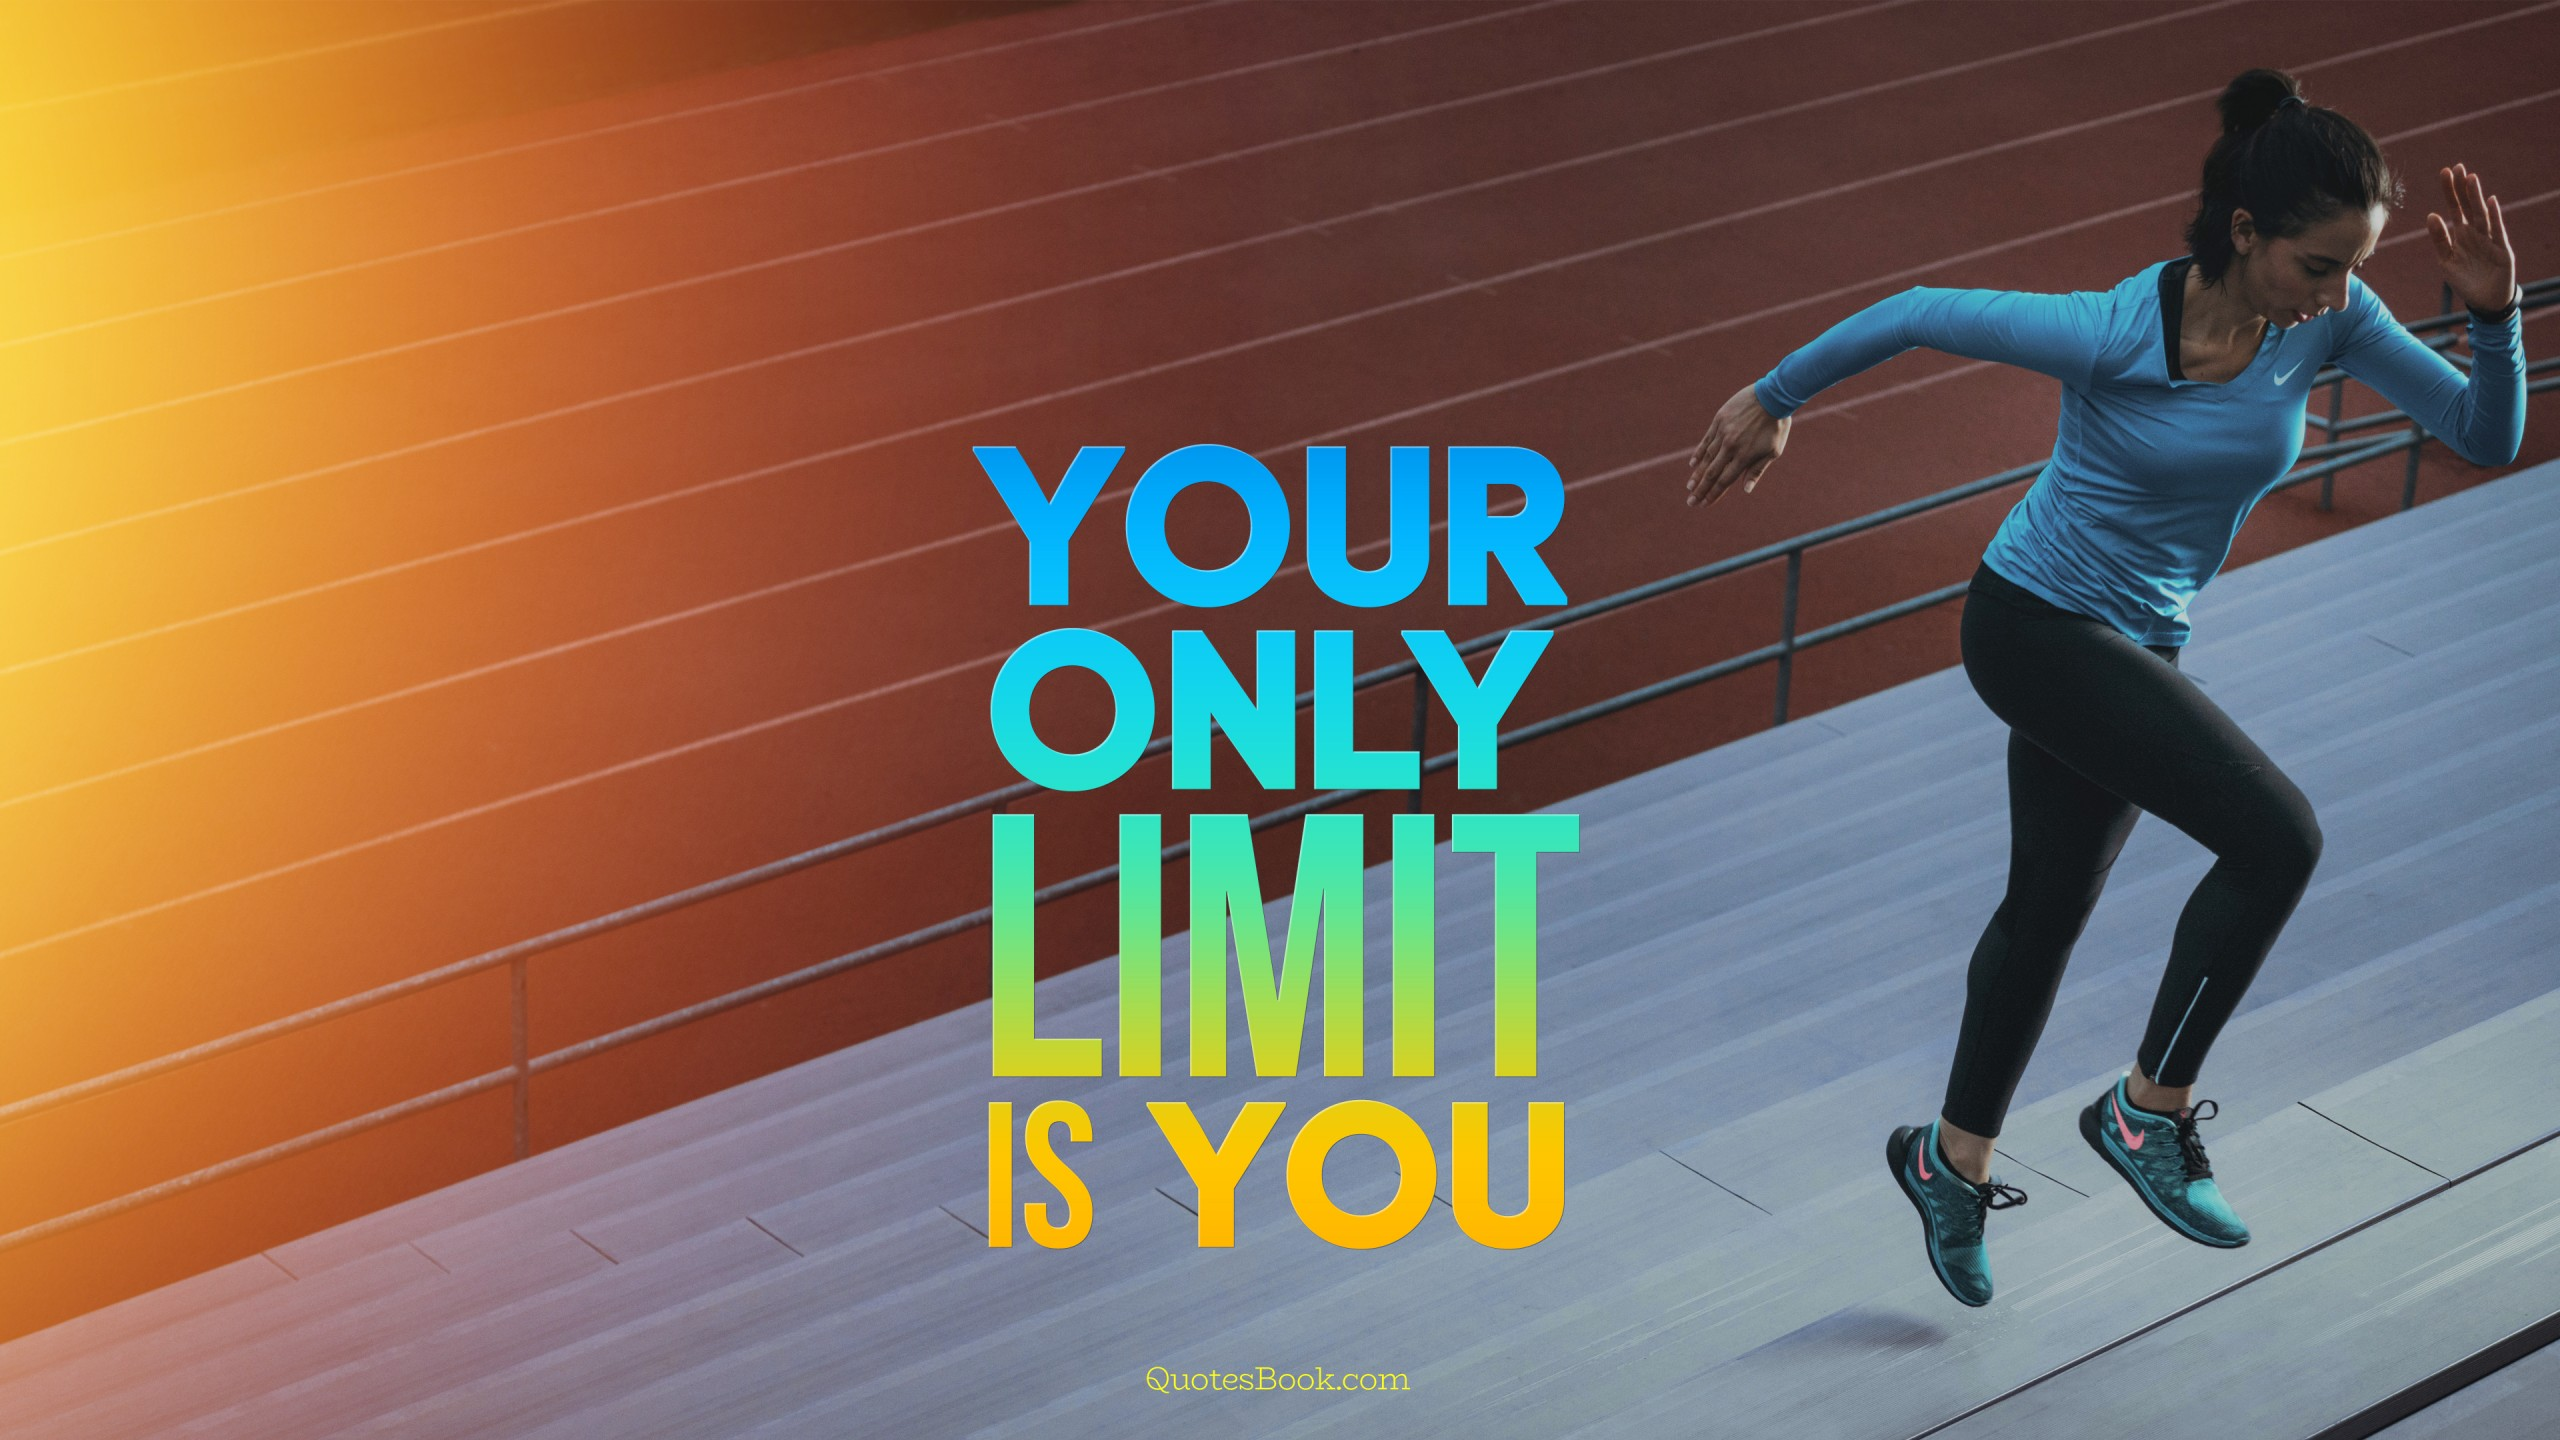 Your Only Limit Is You Quotesbook